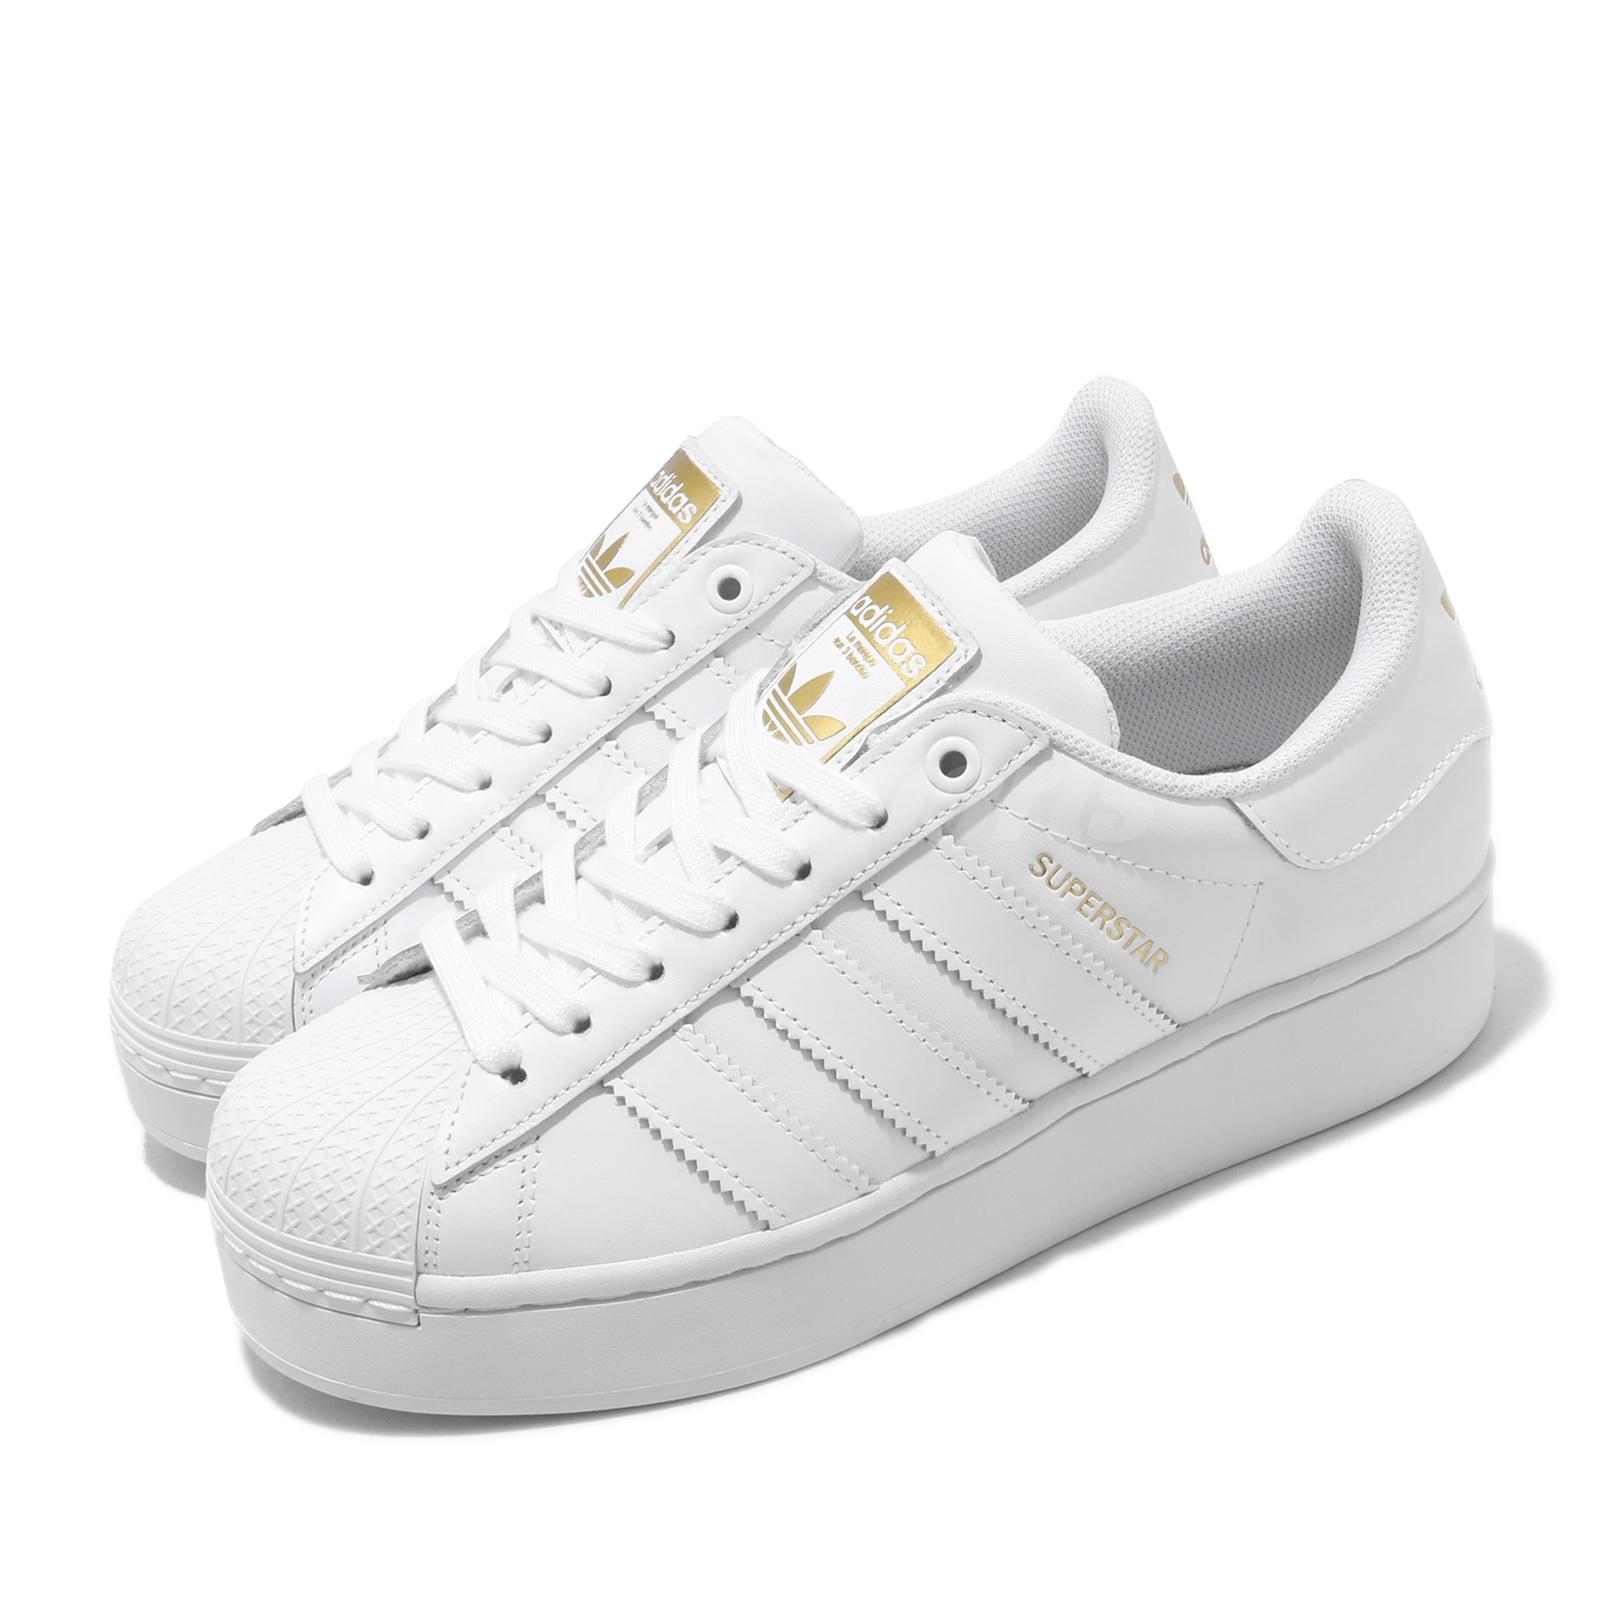 Details about adidas Originals Superstar Bold W White Womens Lifestyle  Casual Shoes FV3334